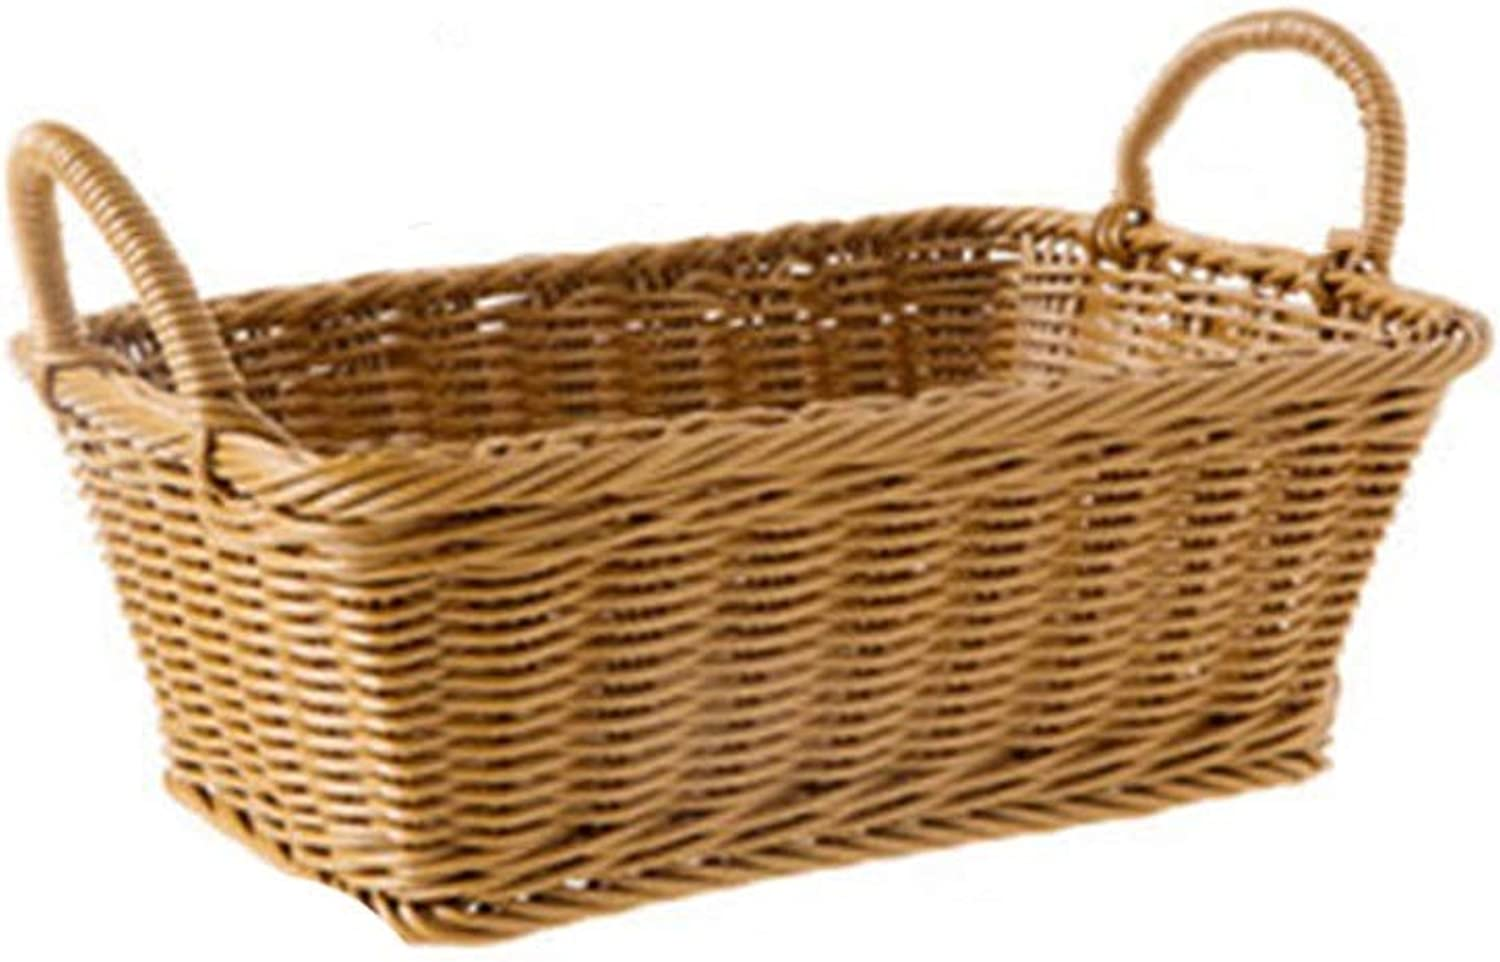 ZHANGQIANG Storage Basket Laundry Basket Rattan Laundry Hamper Basket Ideal Gift (color   Wood color, Size   Small)